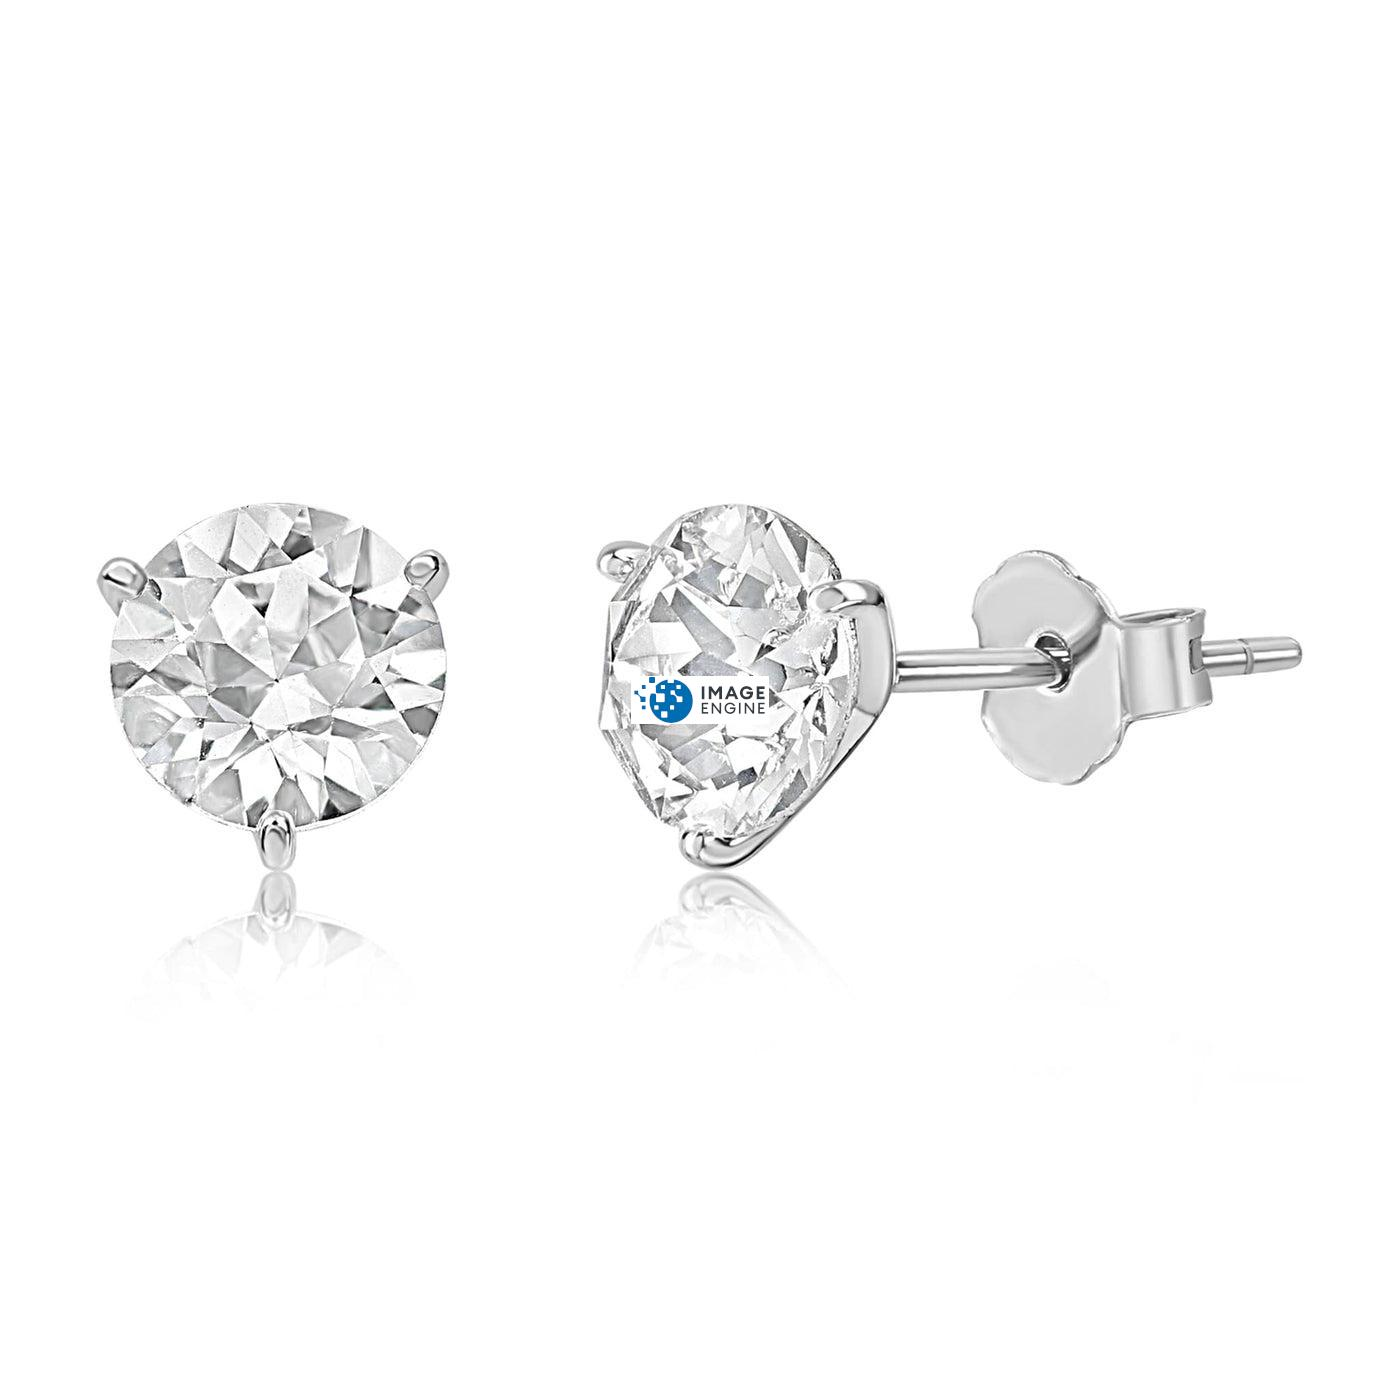 Swarovski Stud Earrings - Facing to the Left - 925 Sterling Silver